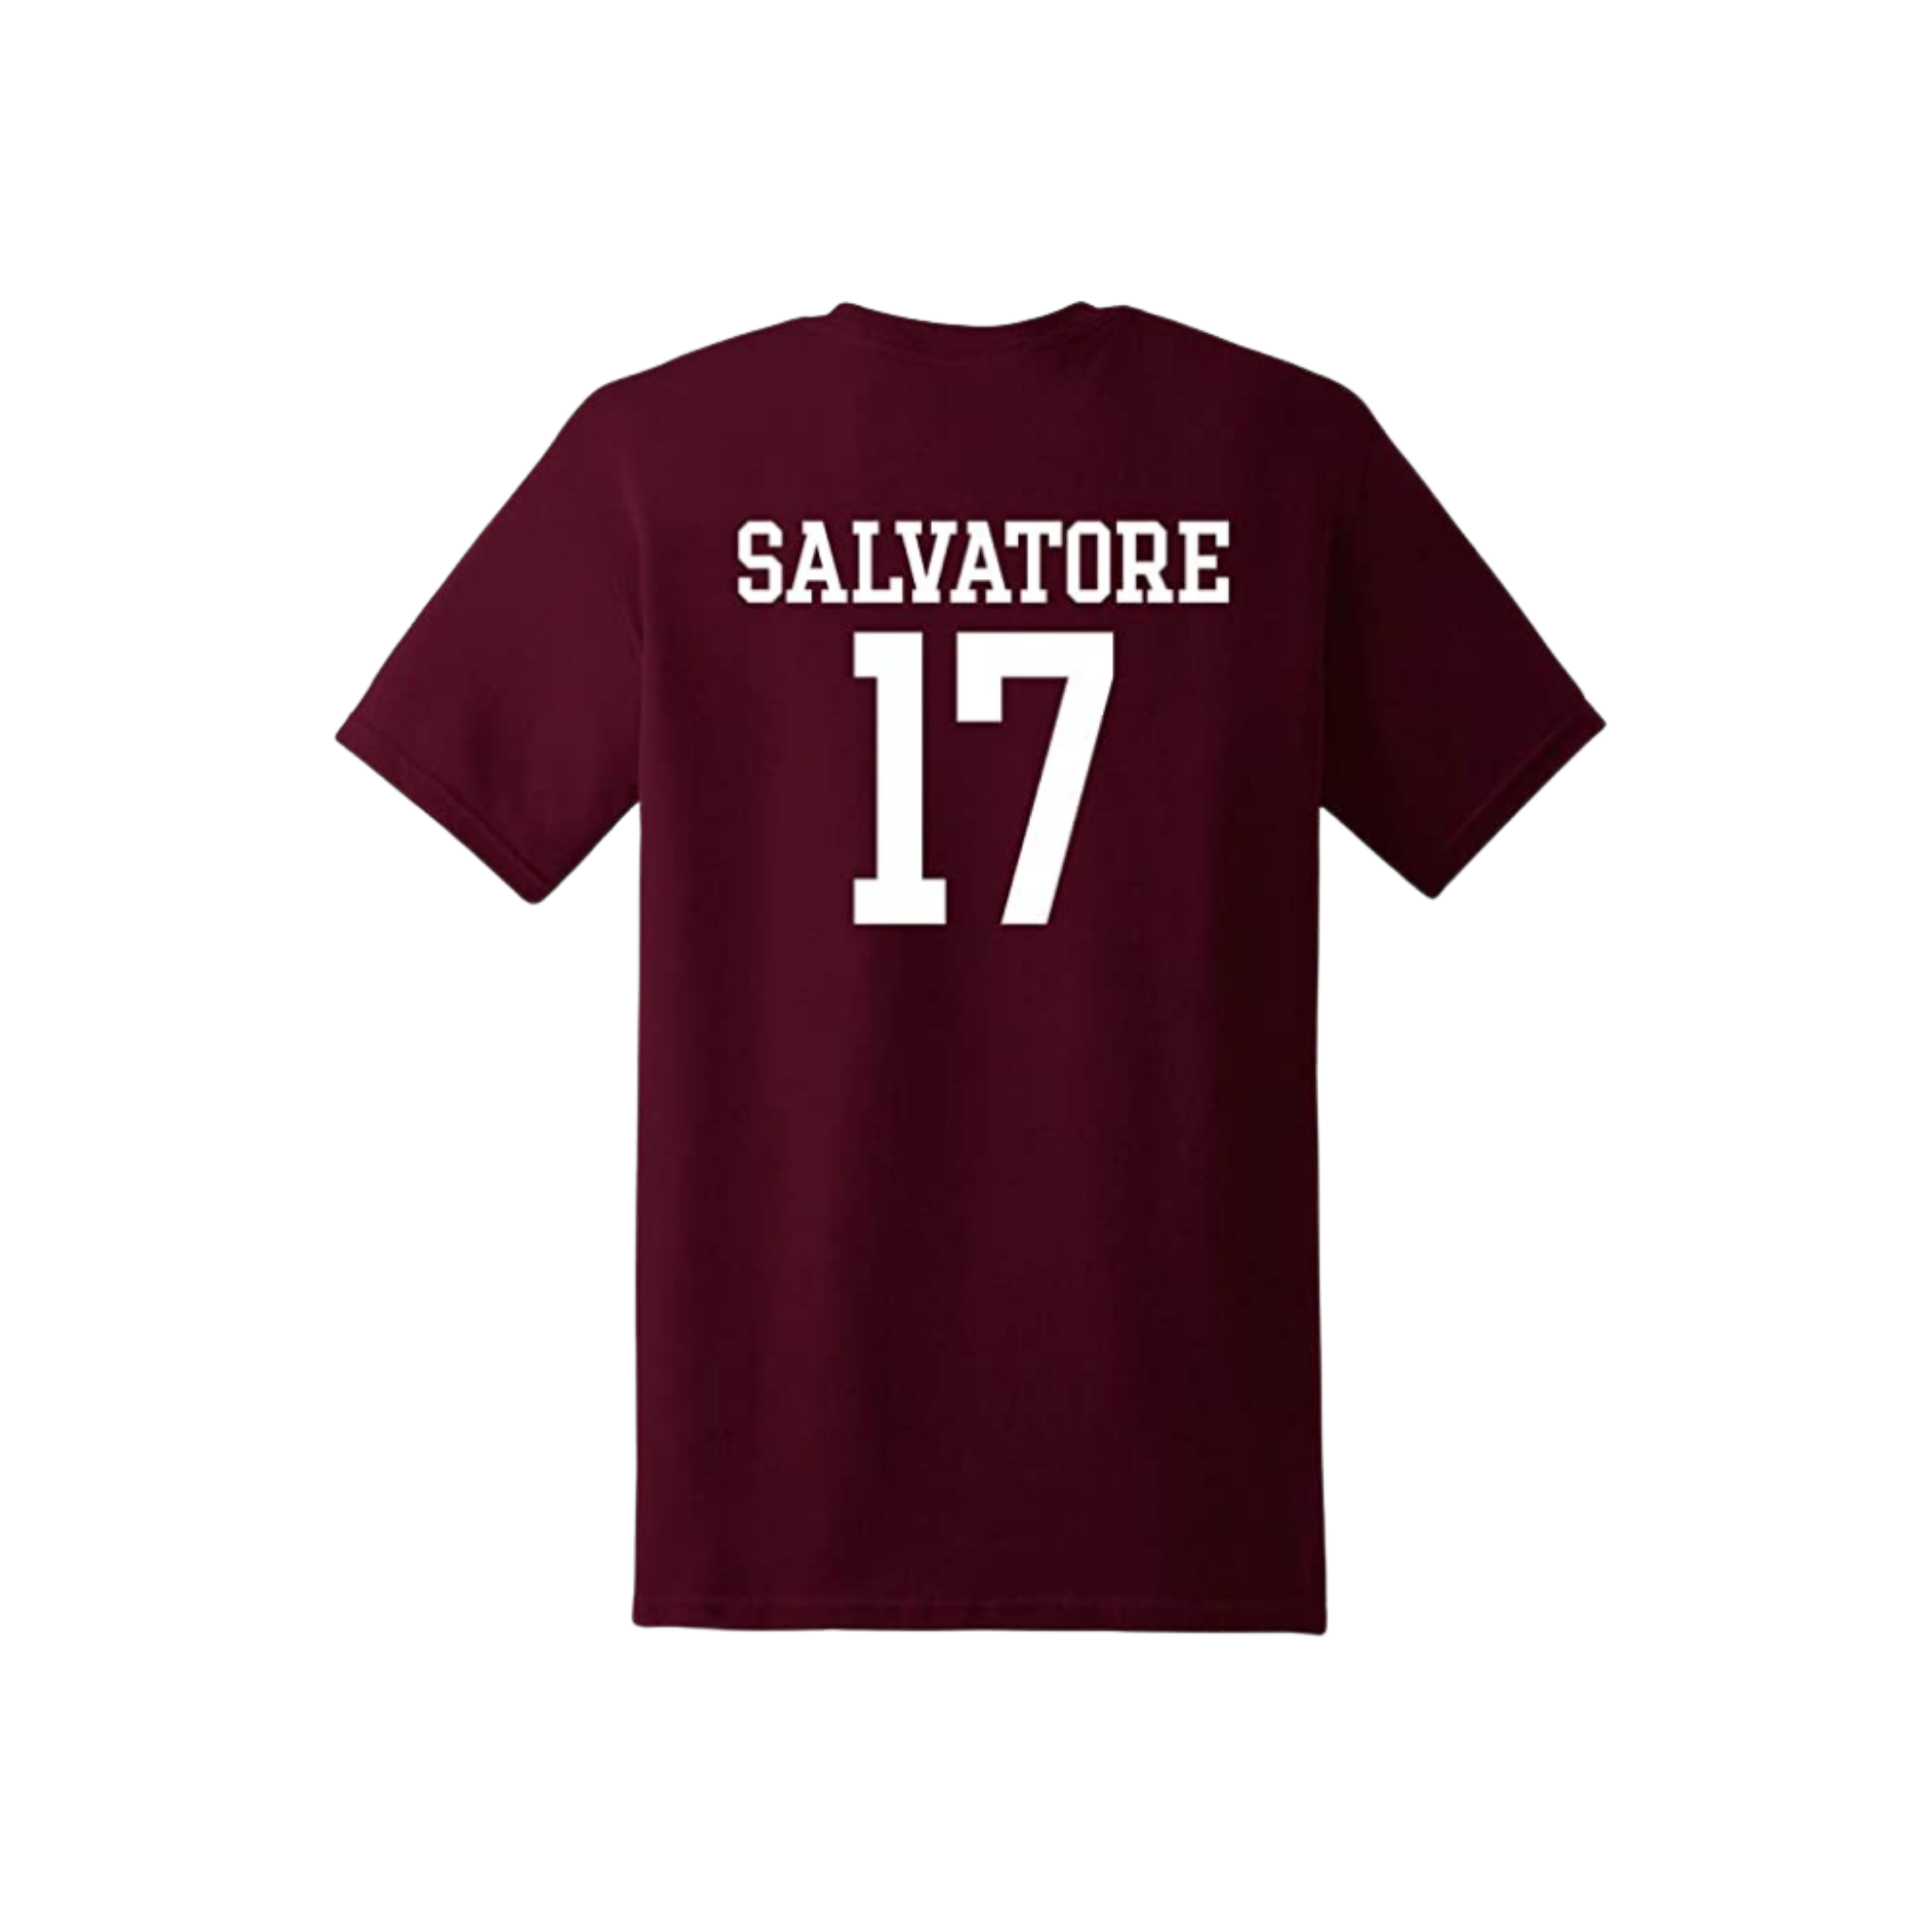 Unisex Vampire Diaries Mystic Falls Salvatore #17 Tee | Medium - MGworld